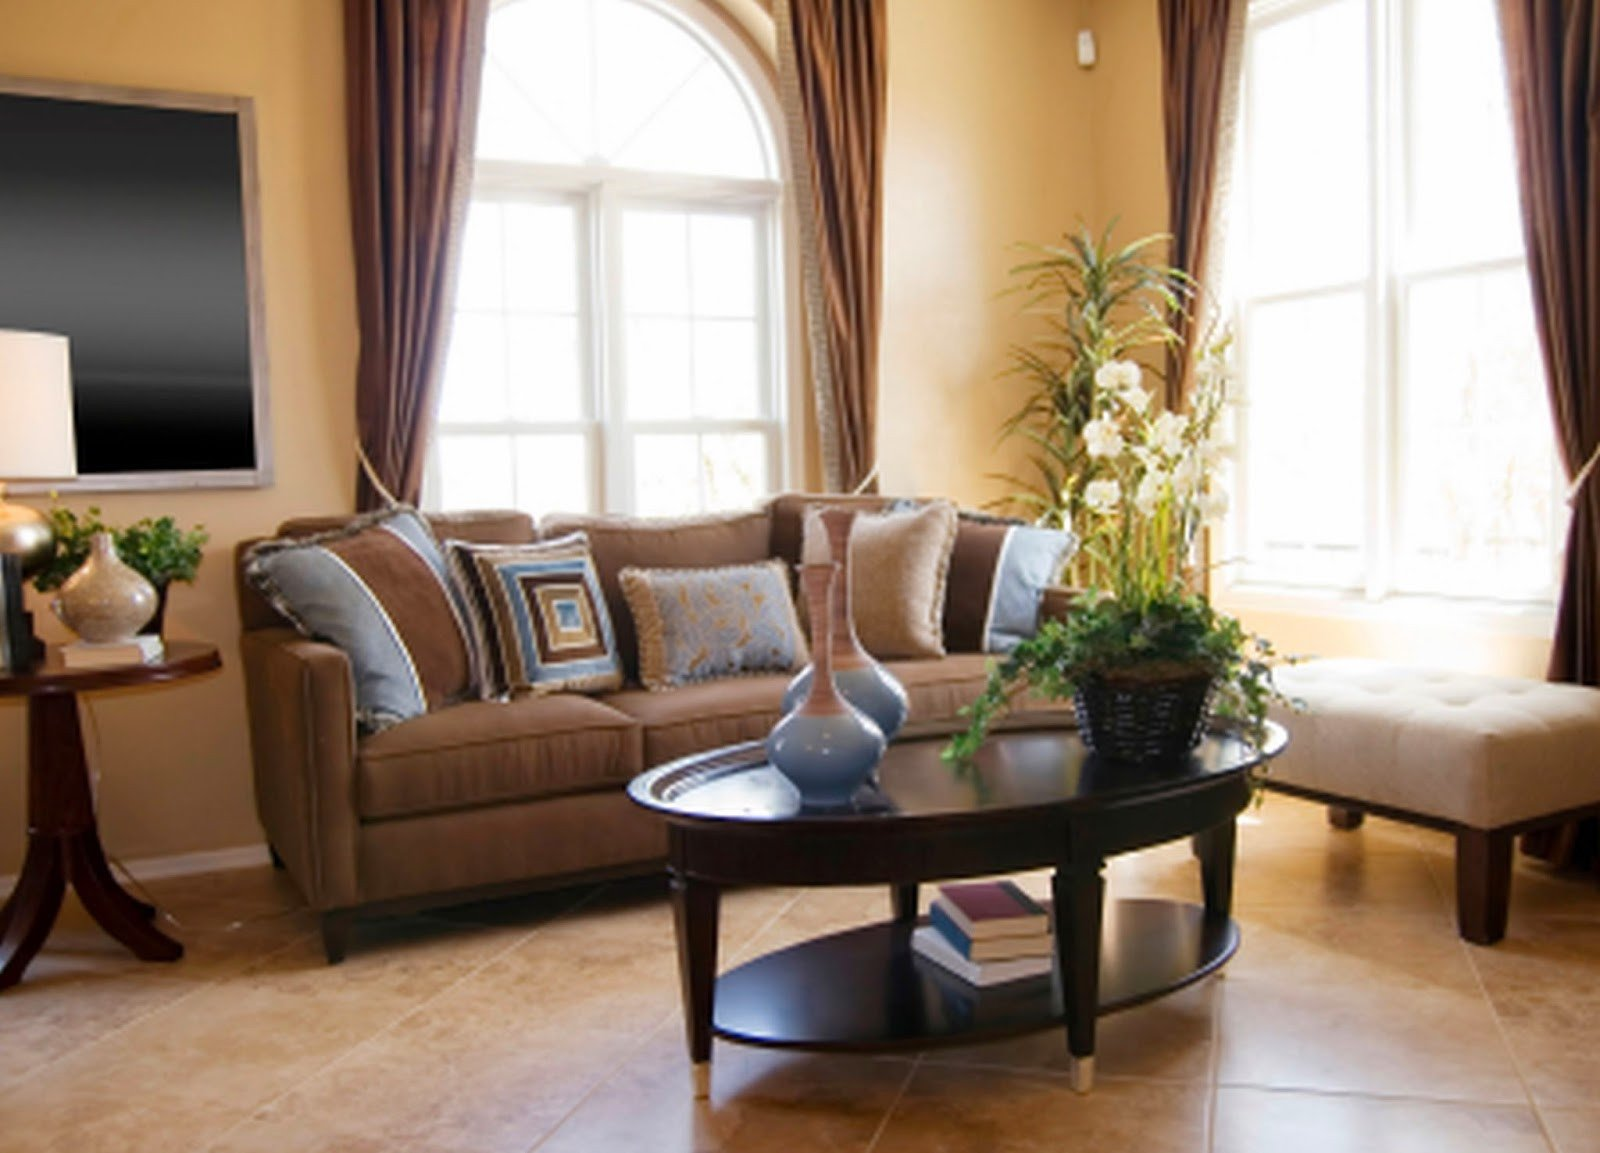 Brown Living Room Decor Ideas New 2 Living Room Decor Ideas Brown Leather sofa